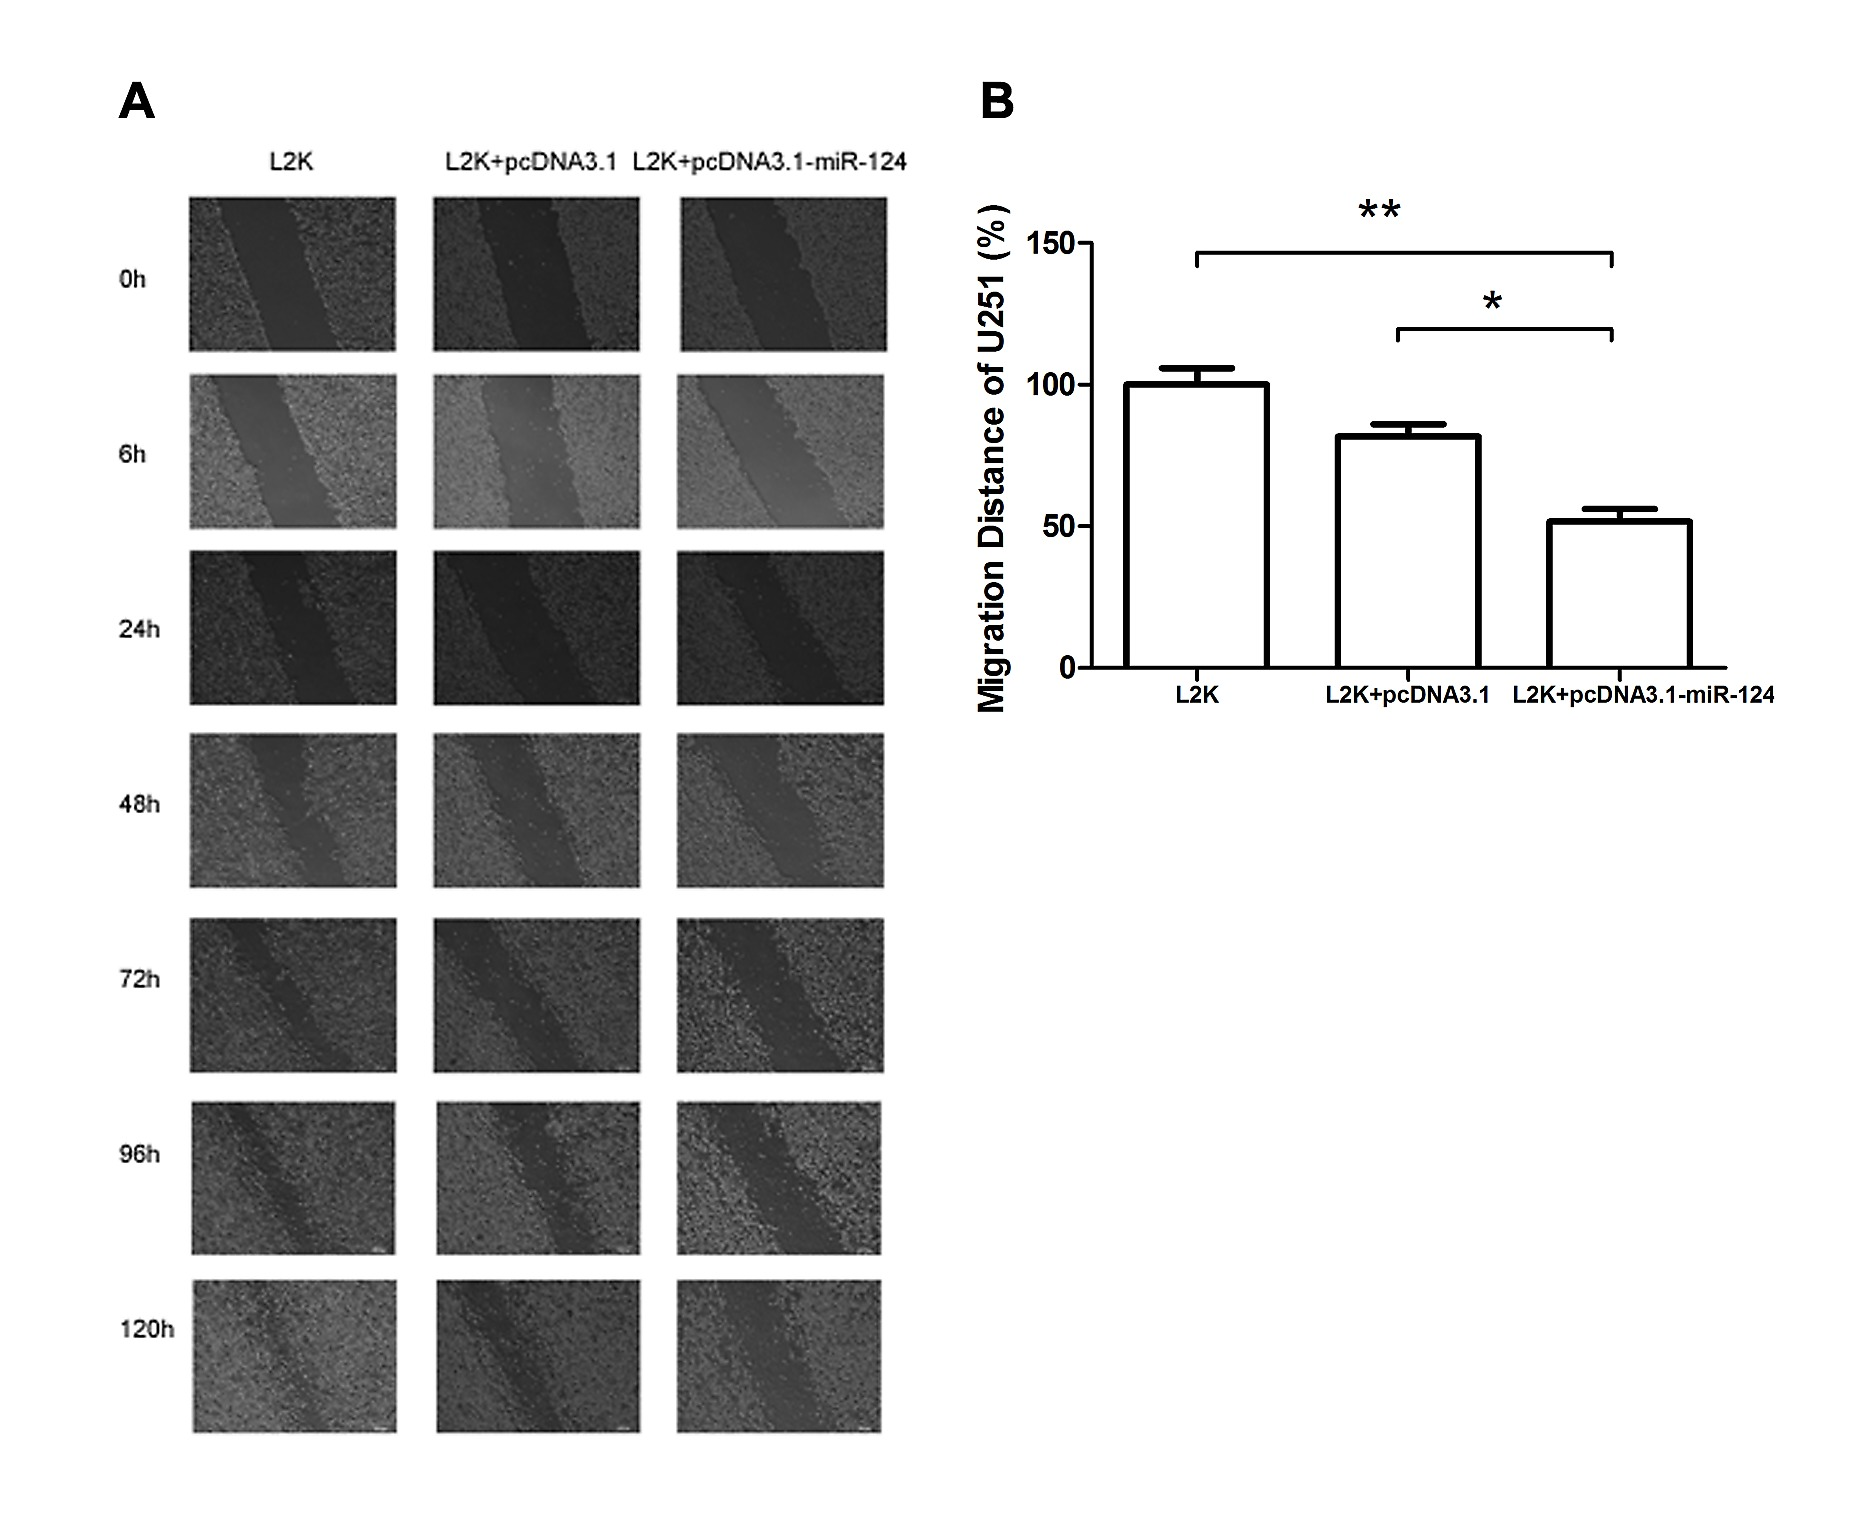 microRNA 124 Inhibits Migration and Invasion by Down Regulating